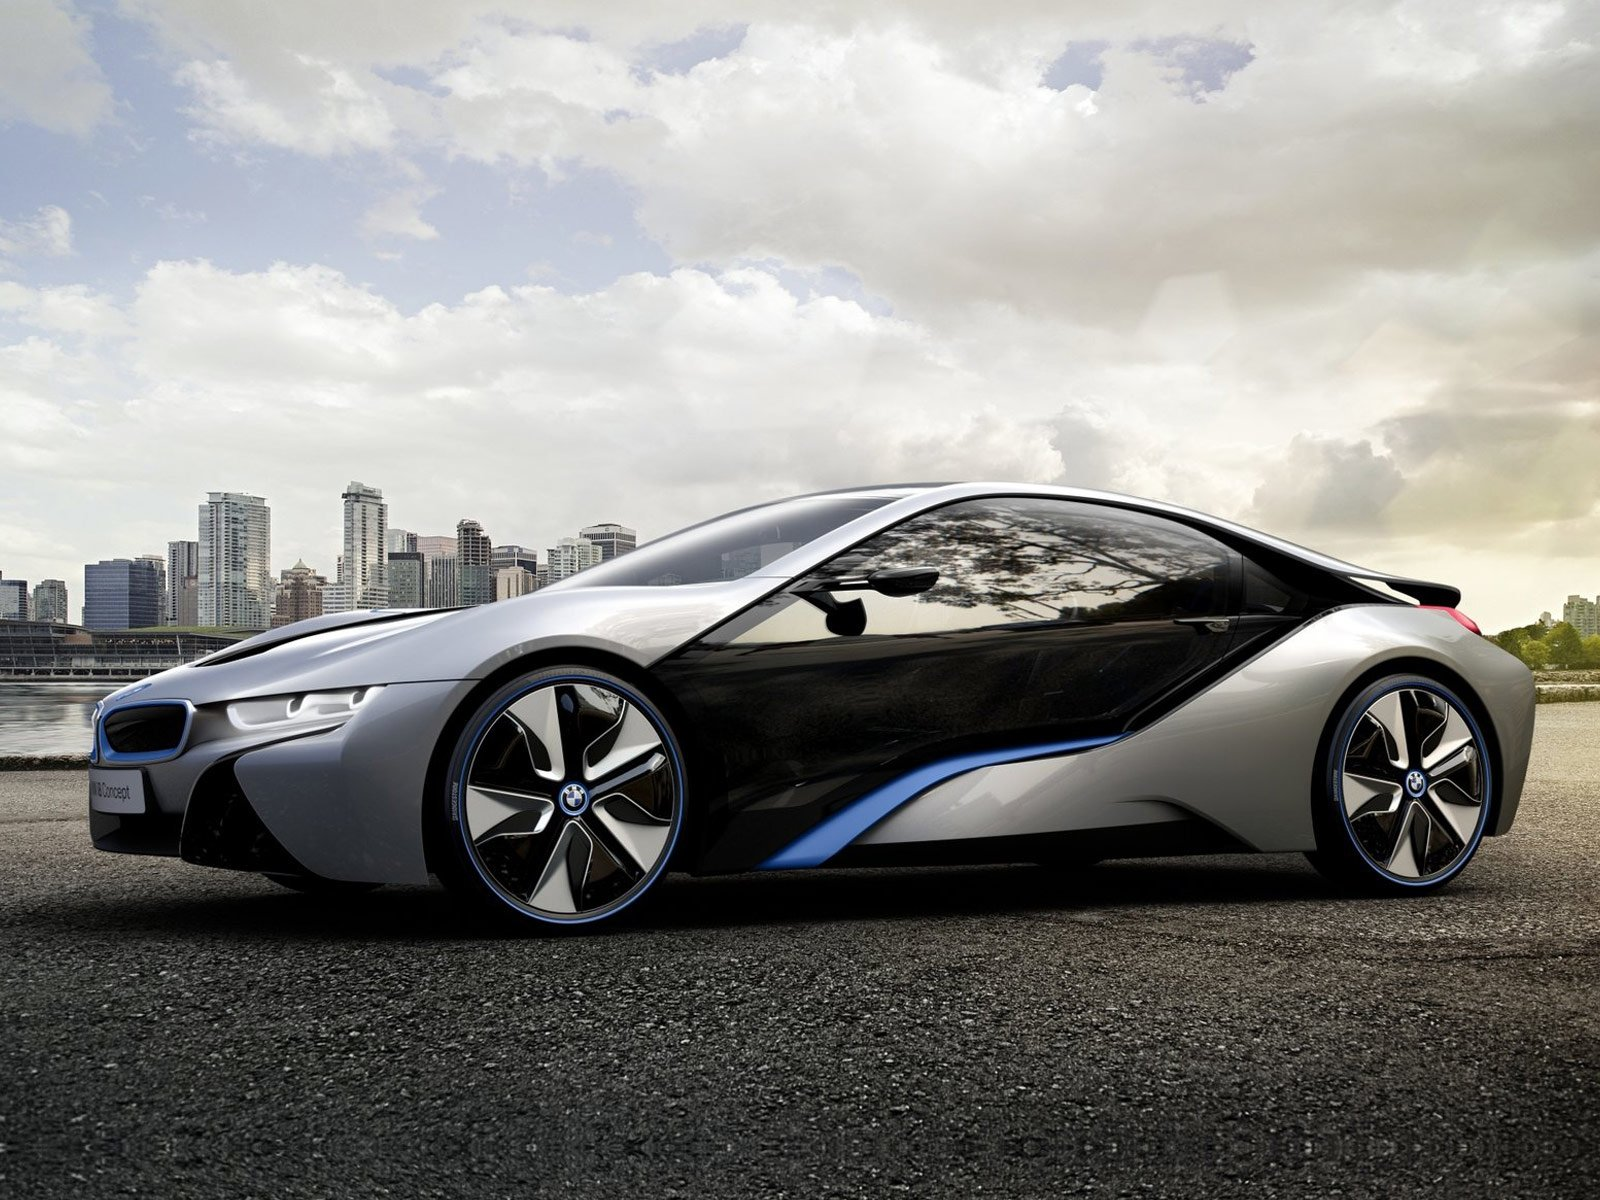 Latest 2011 Bmw I8 Concept Car Desktop Wallpapers Features Free Download